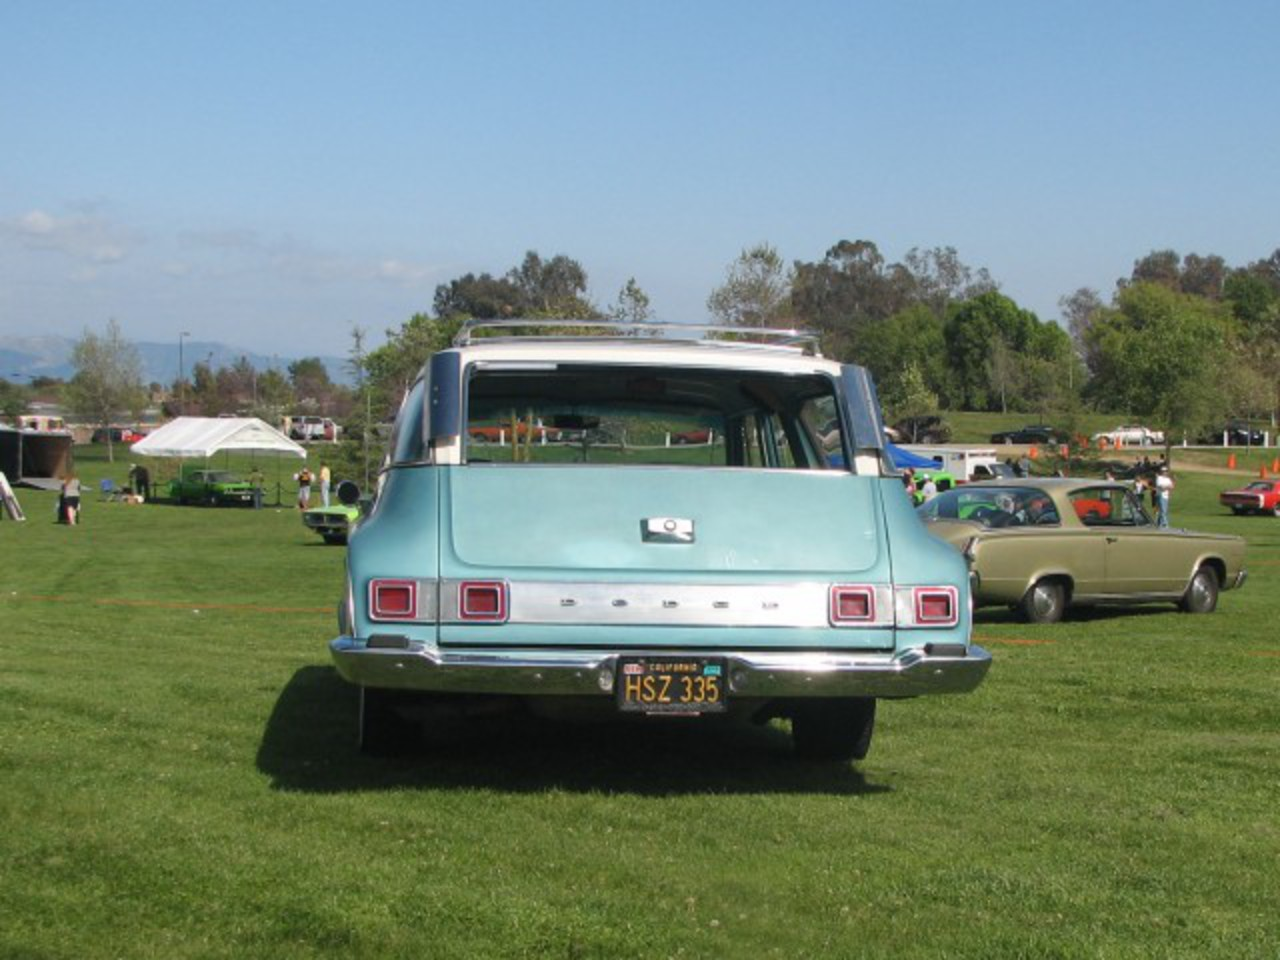 Skywatcher68 is right, and first on the site. 1964 Dodge 440 Station Wagon.